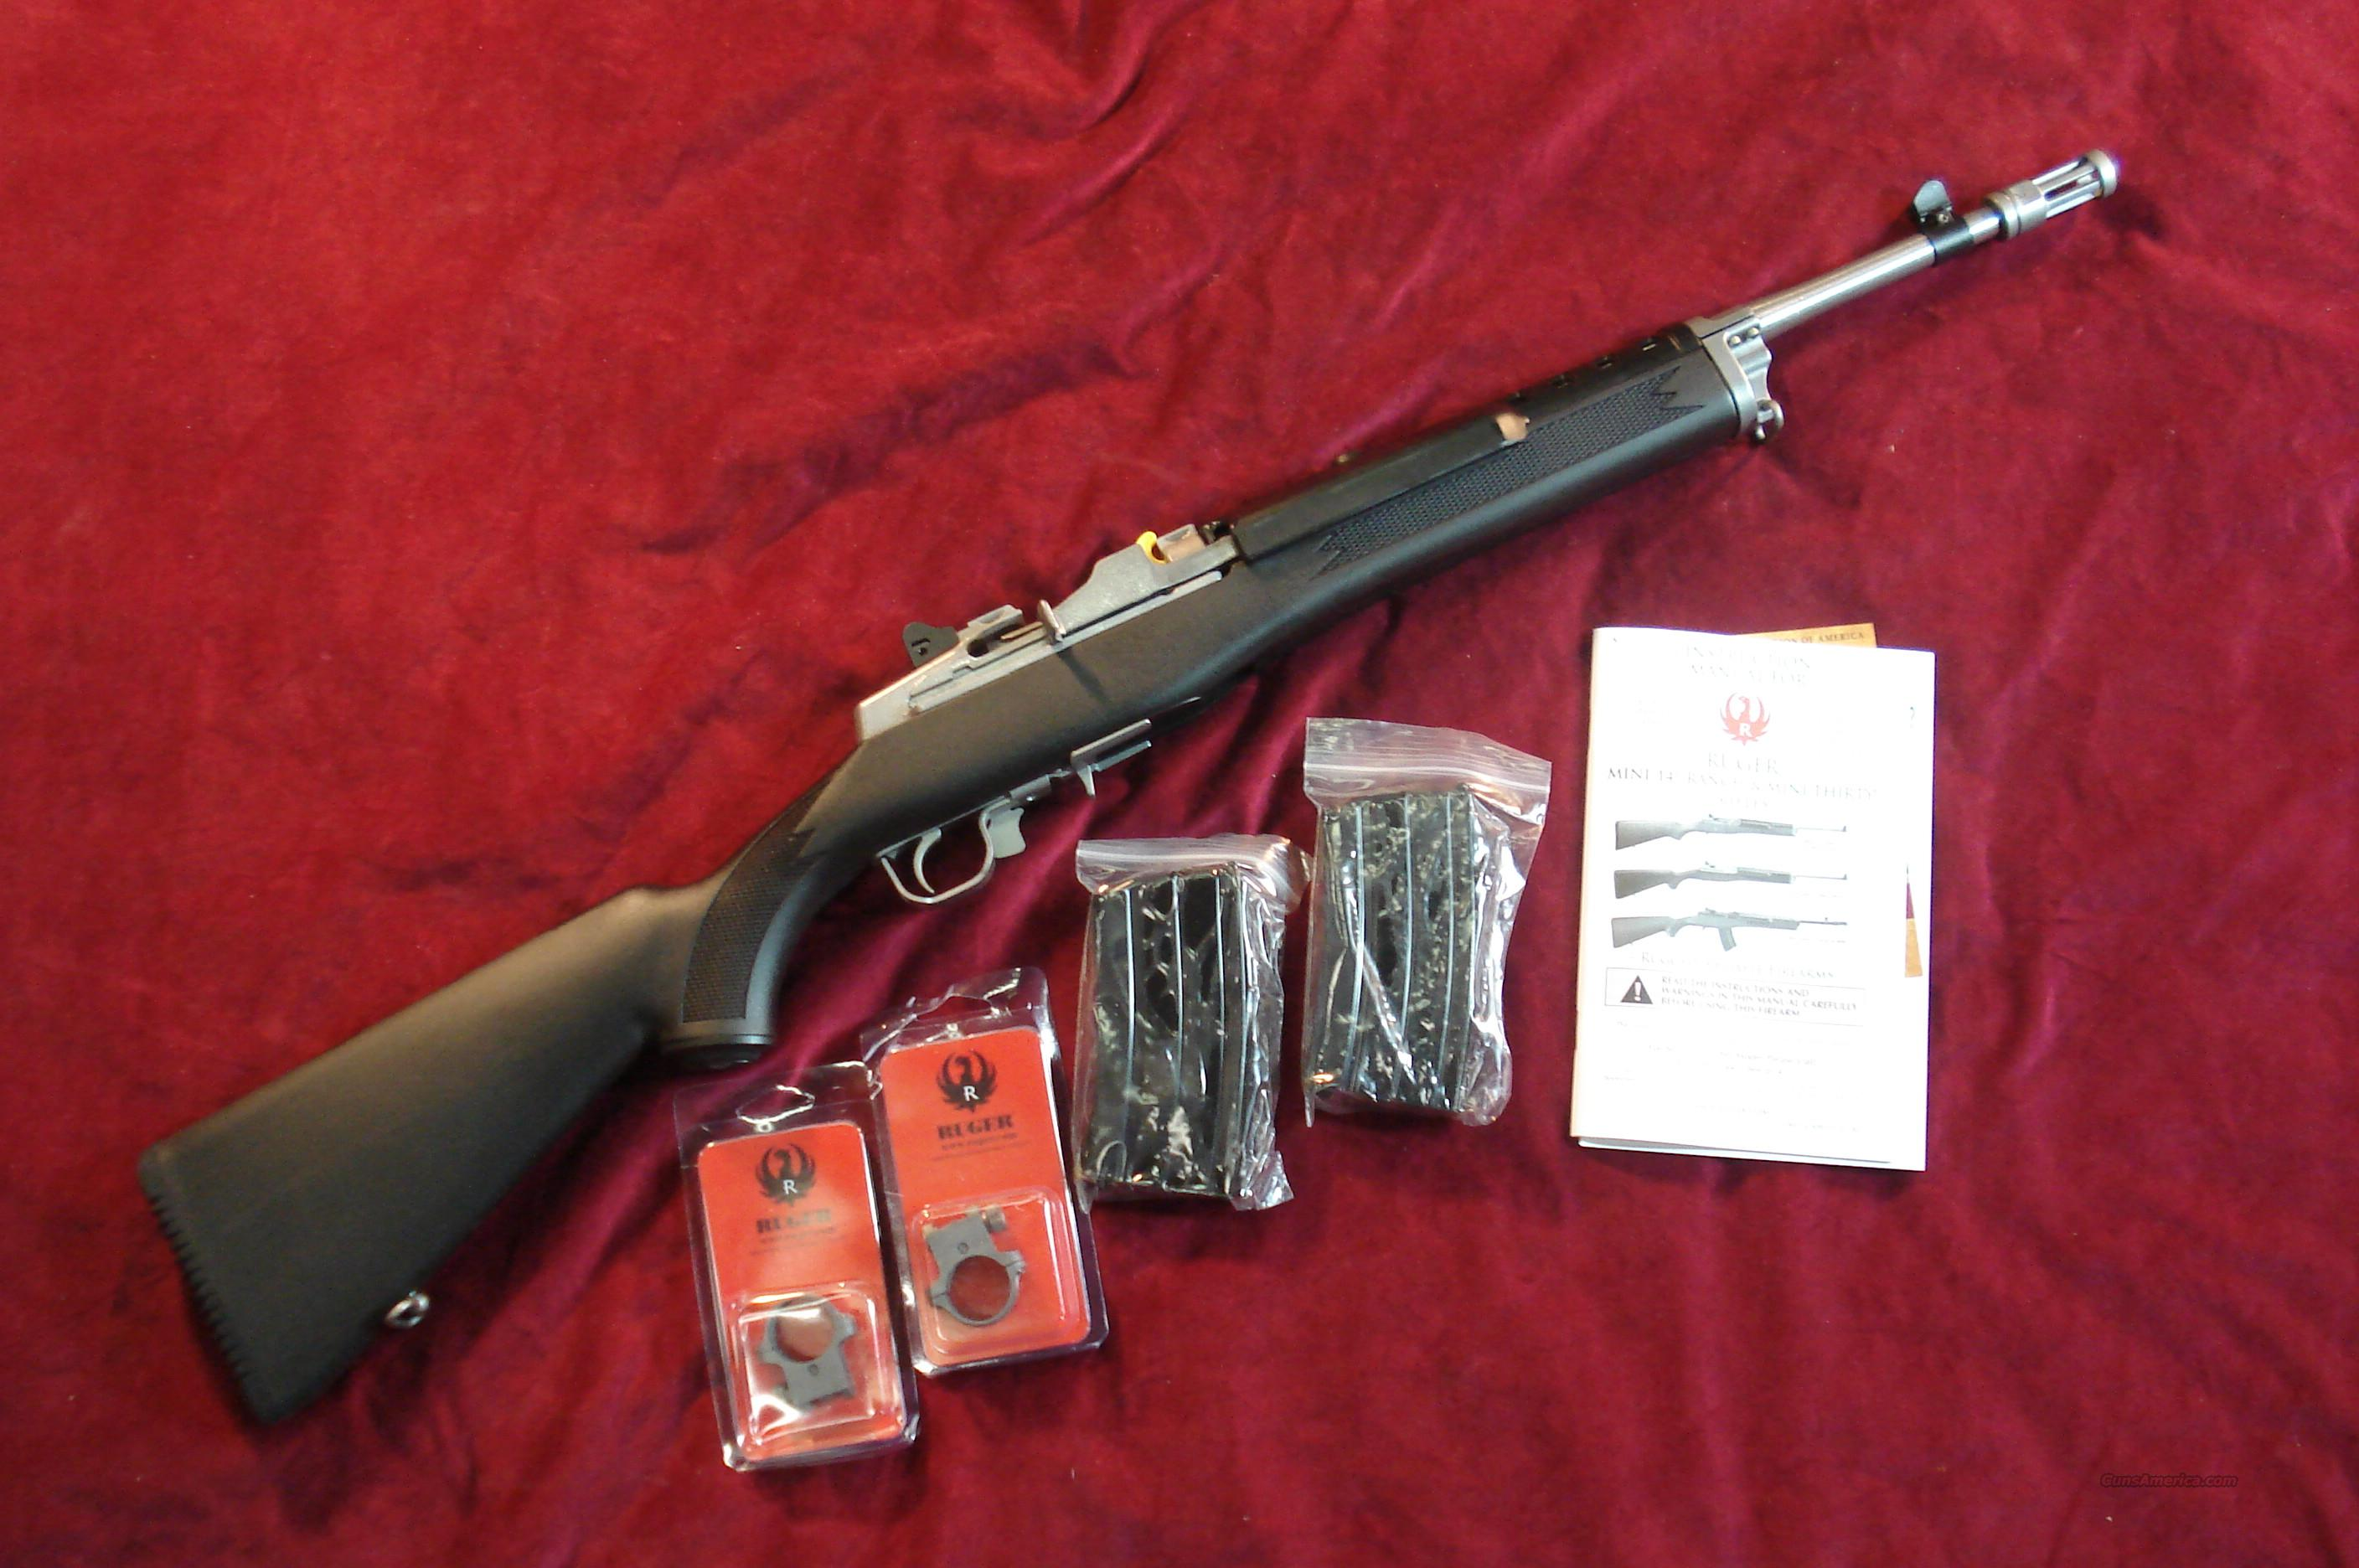 RUGER STAINLESS MINI 14 TACTICAL RIFLE 223 CAL. NEW (M-14/20GBCP)  (05819)   Guns > Rifles > Ruger Rifles > Mini-14 Type